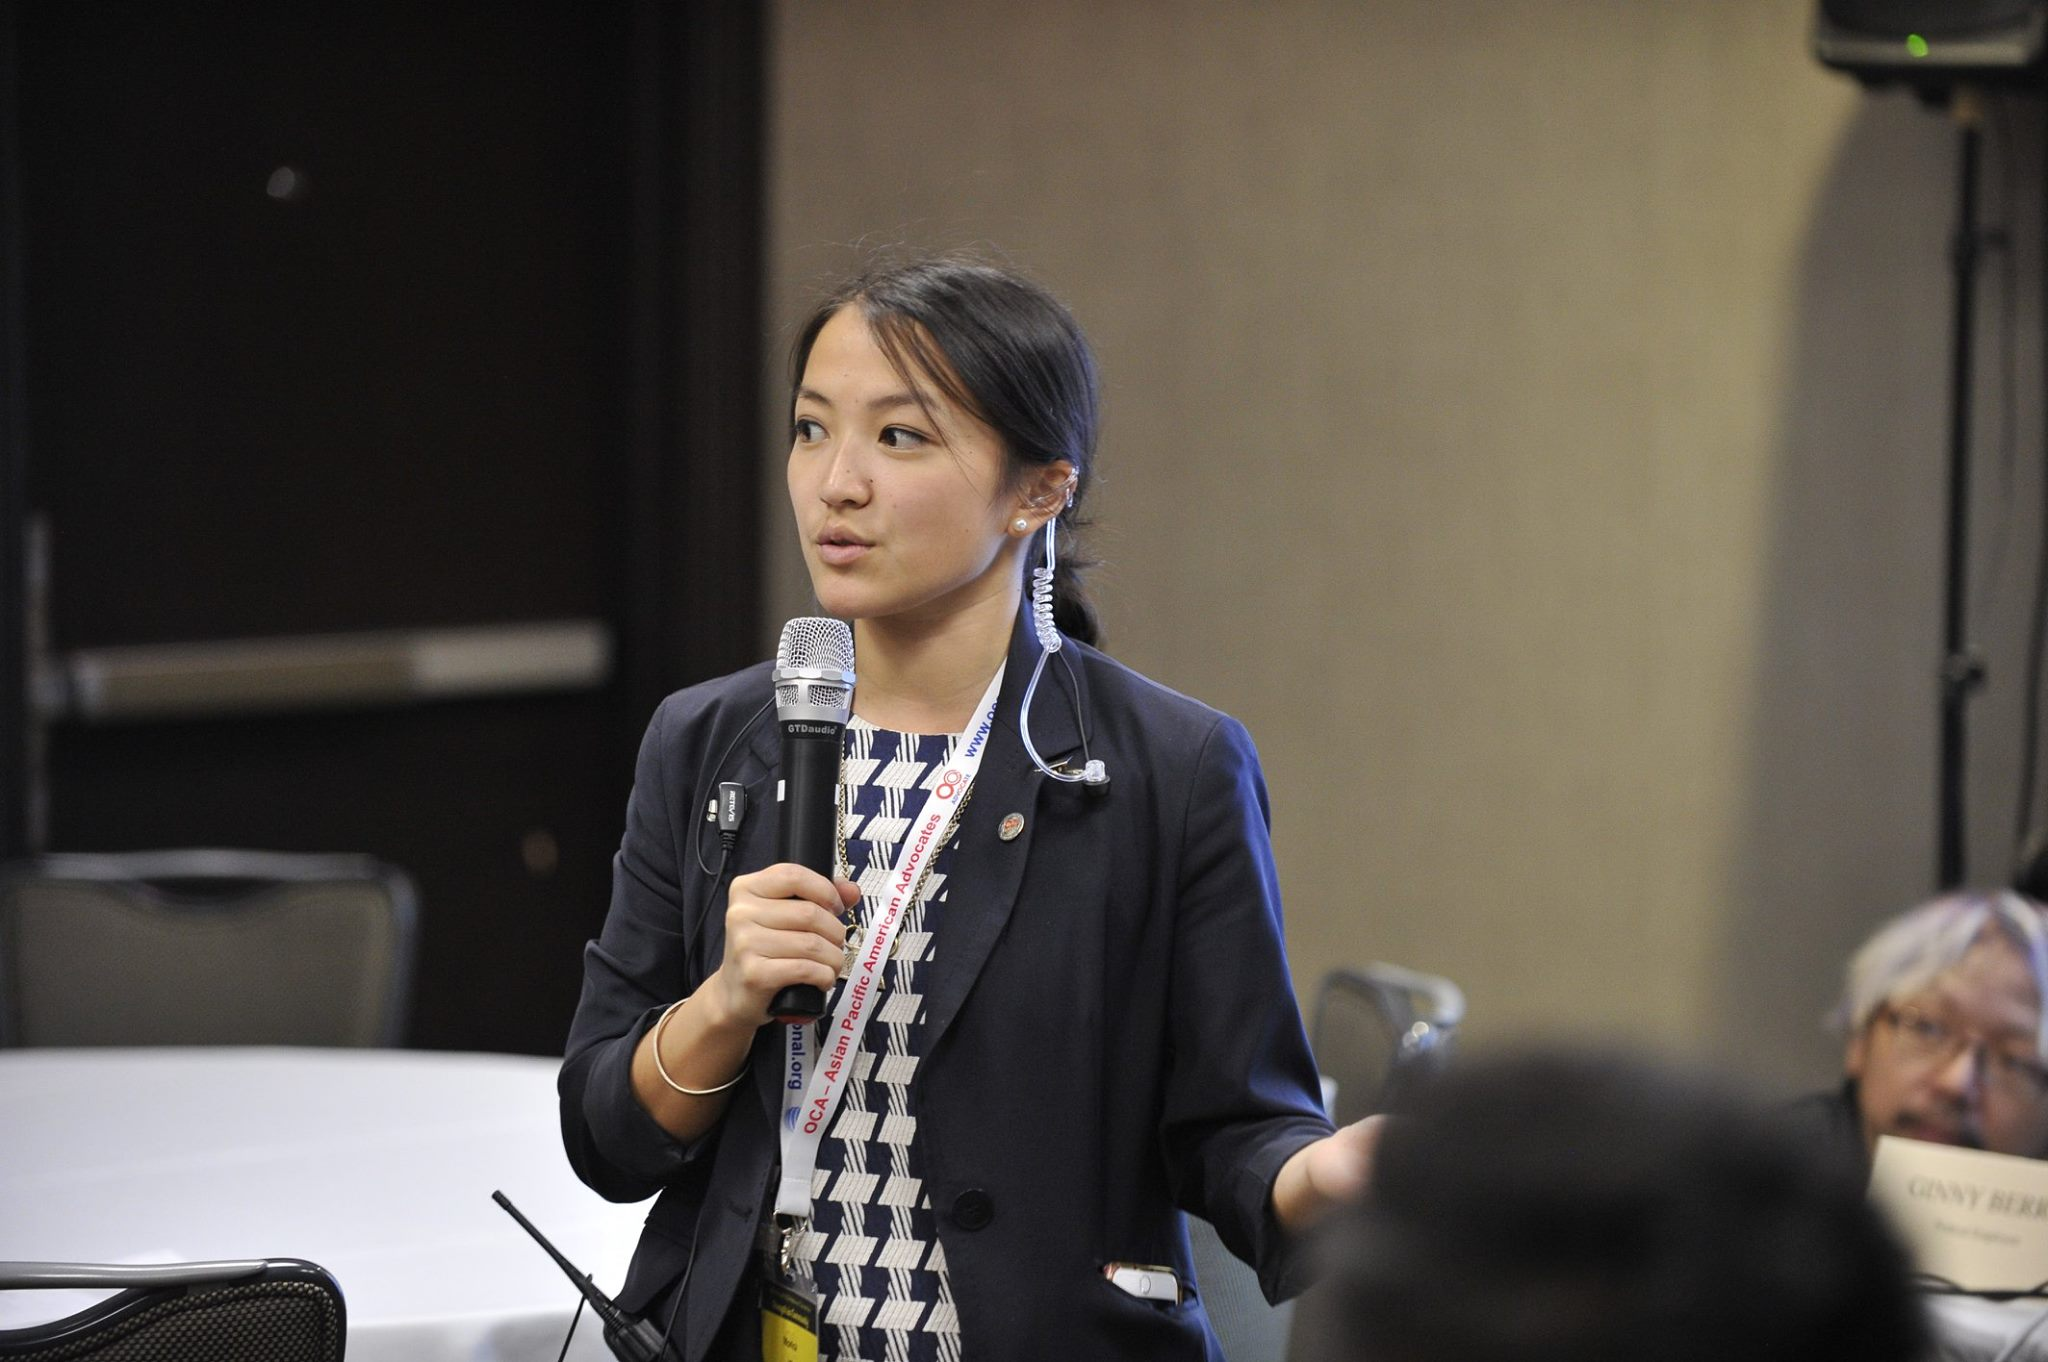 Monica giving remarks during the OCA Convention workshop she planned.